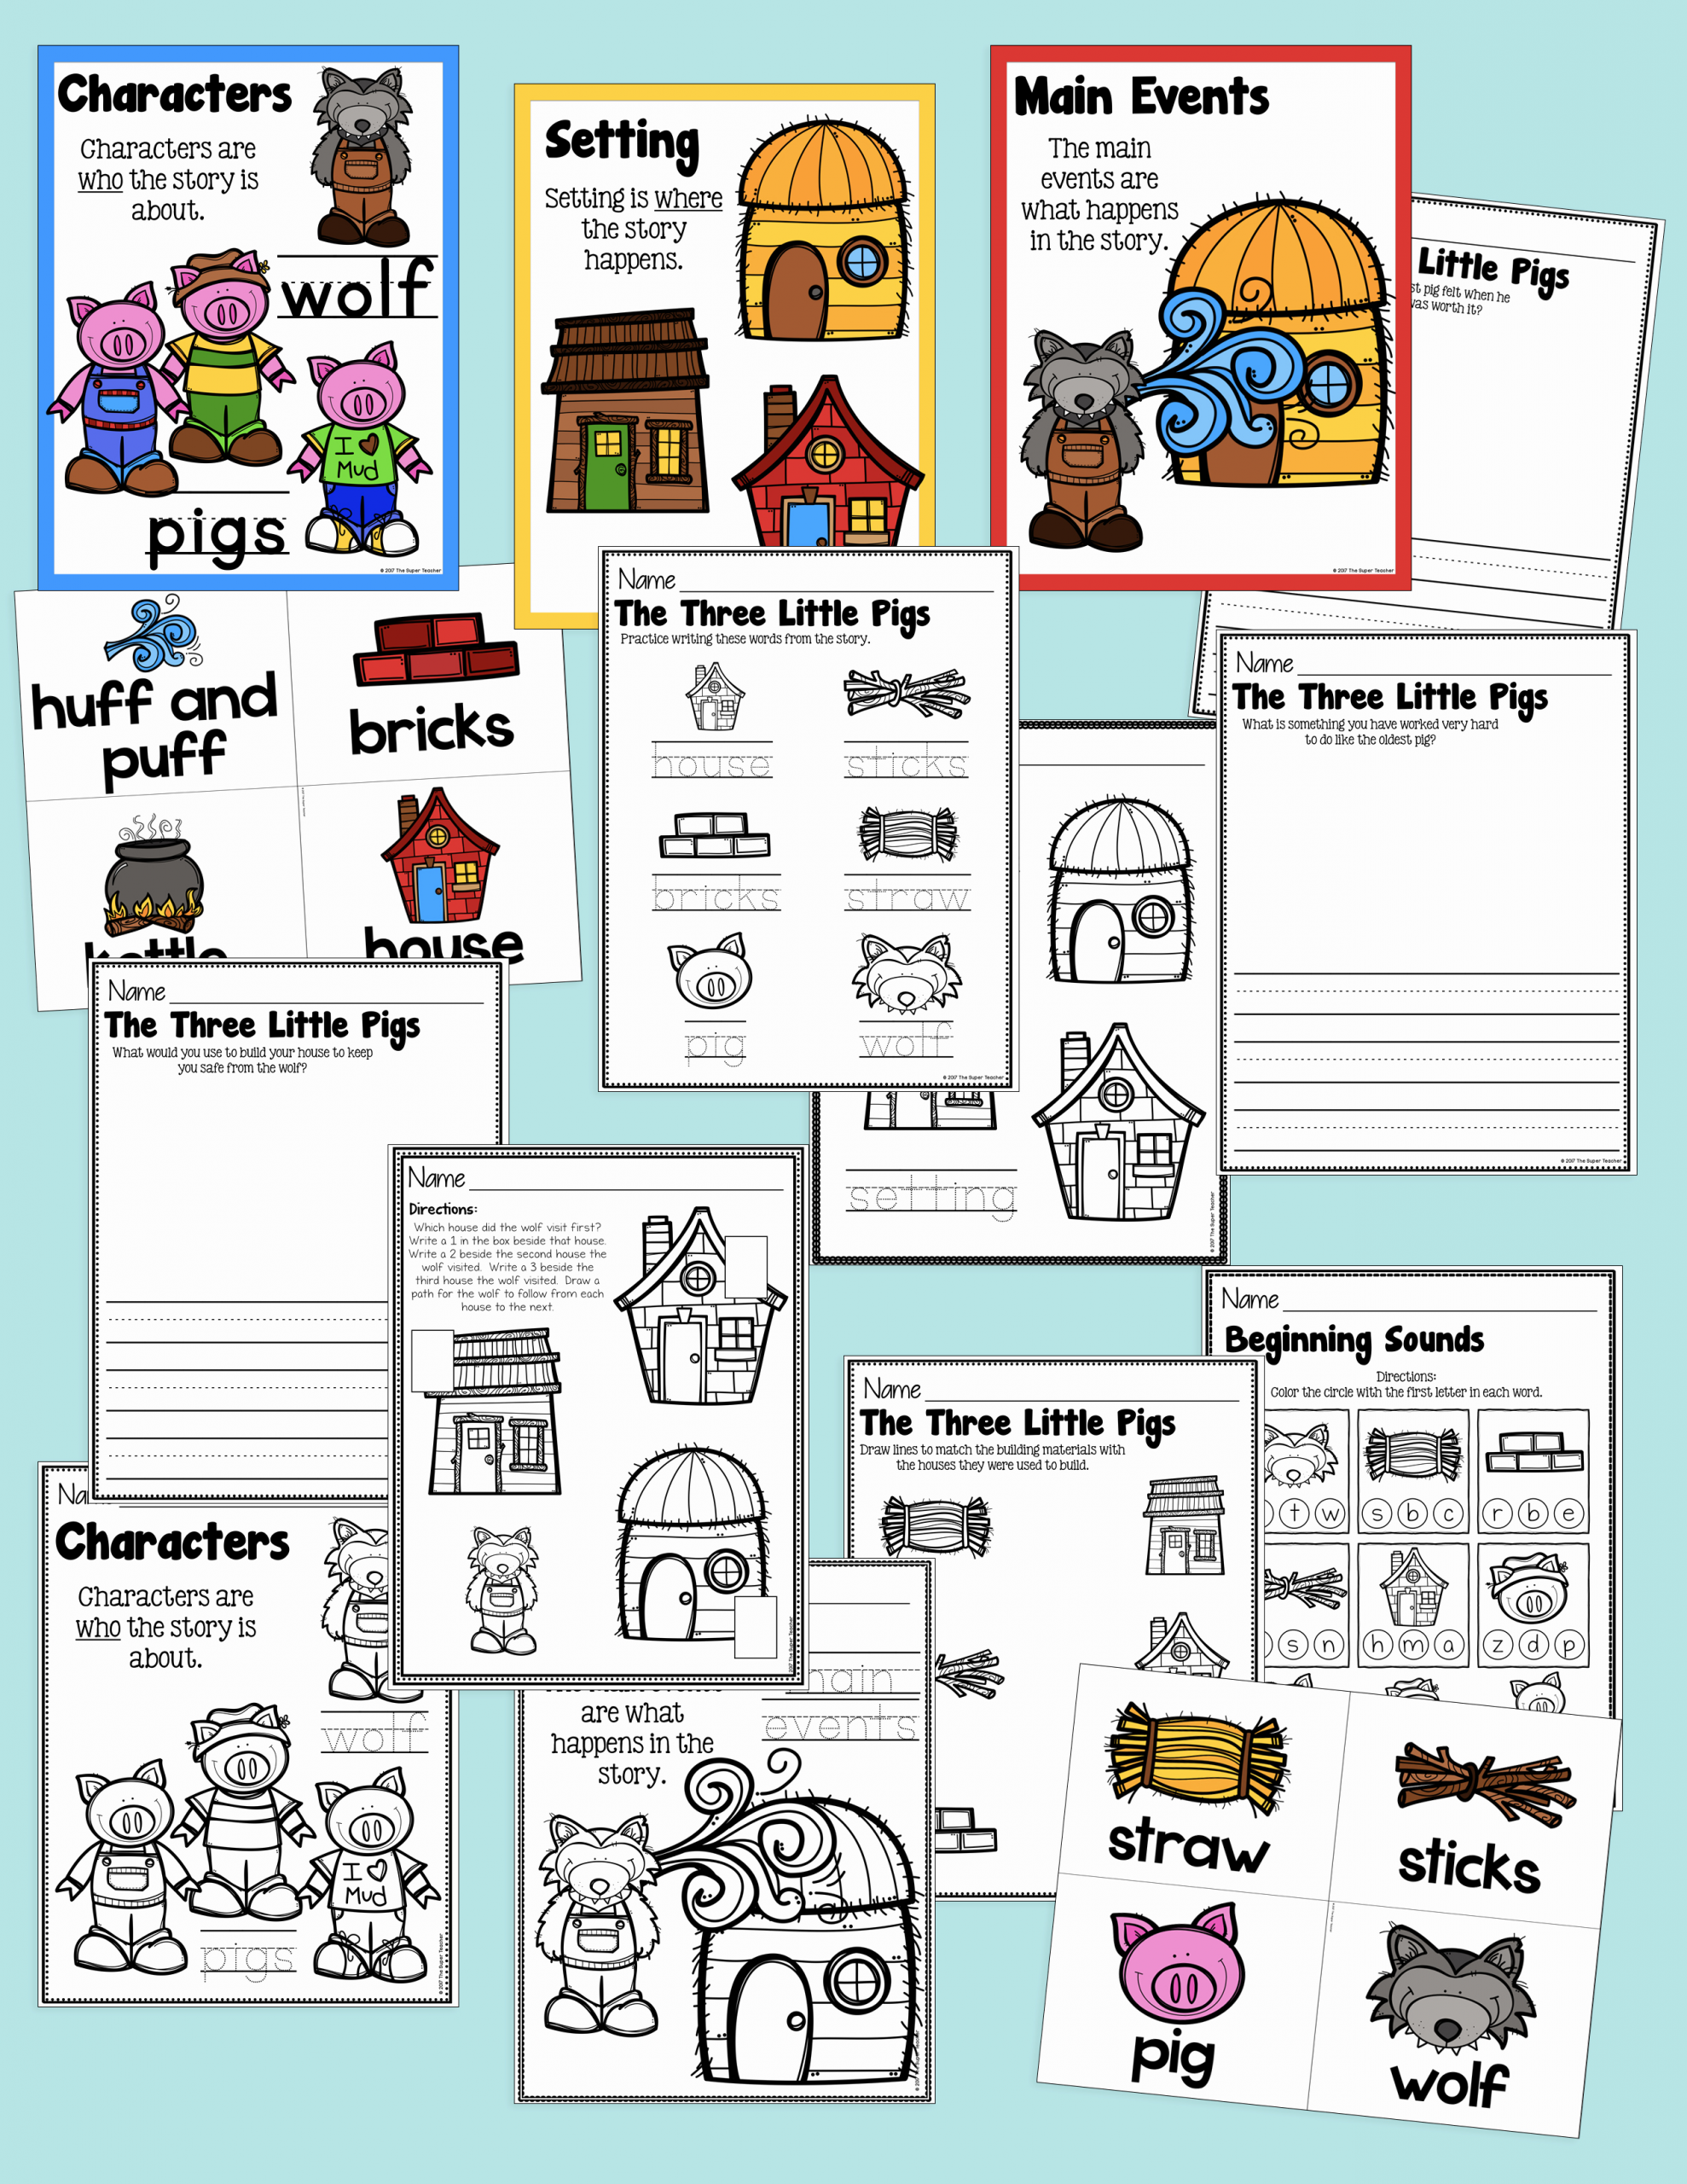 Three Little Pigs Worksheets Awesome Three Little Pigs Story Elements and Story Retelling